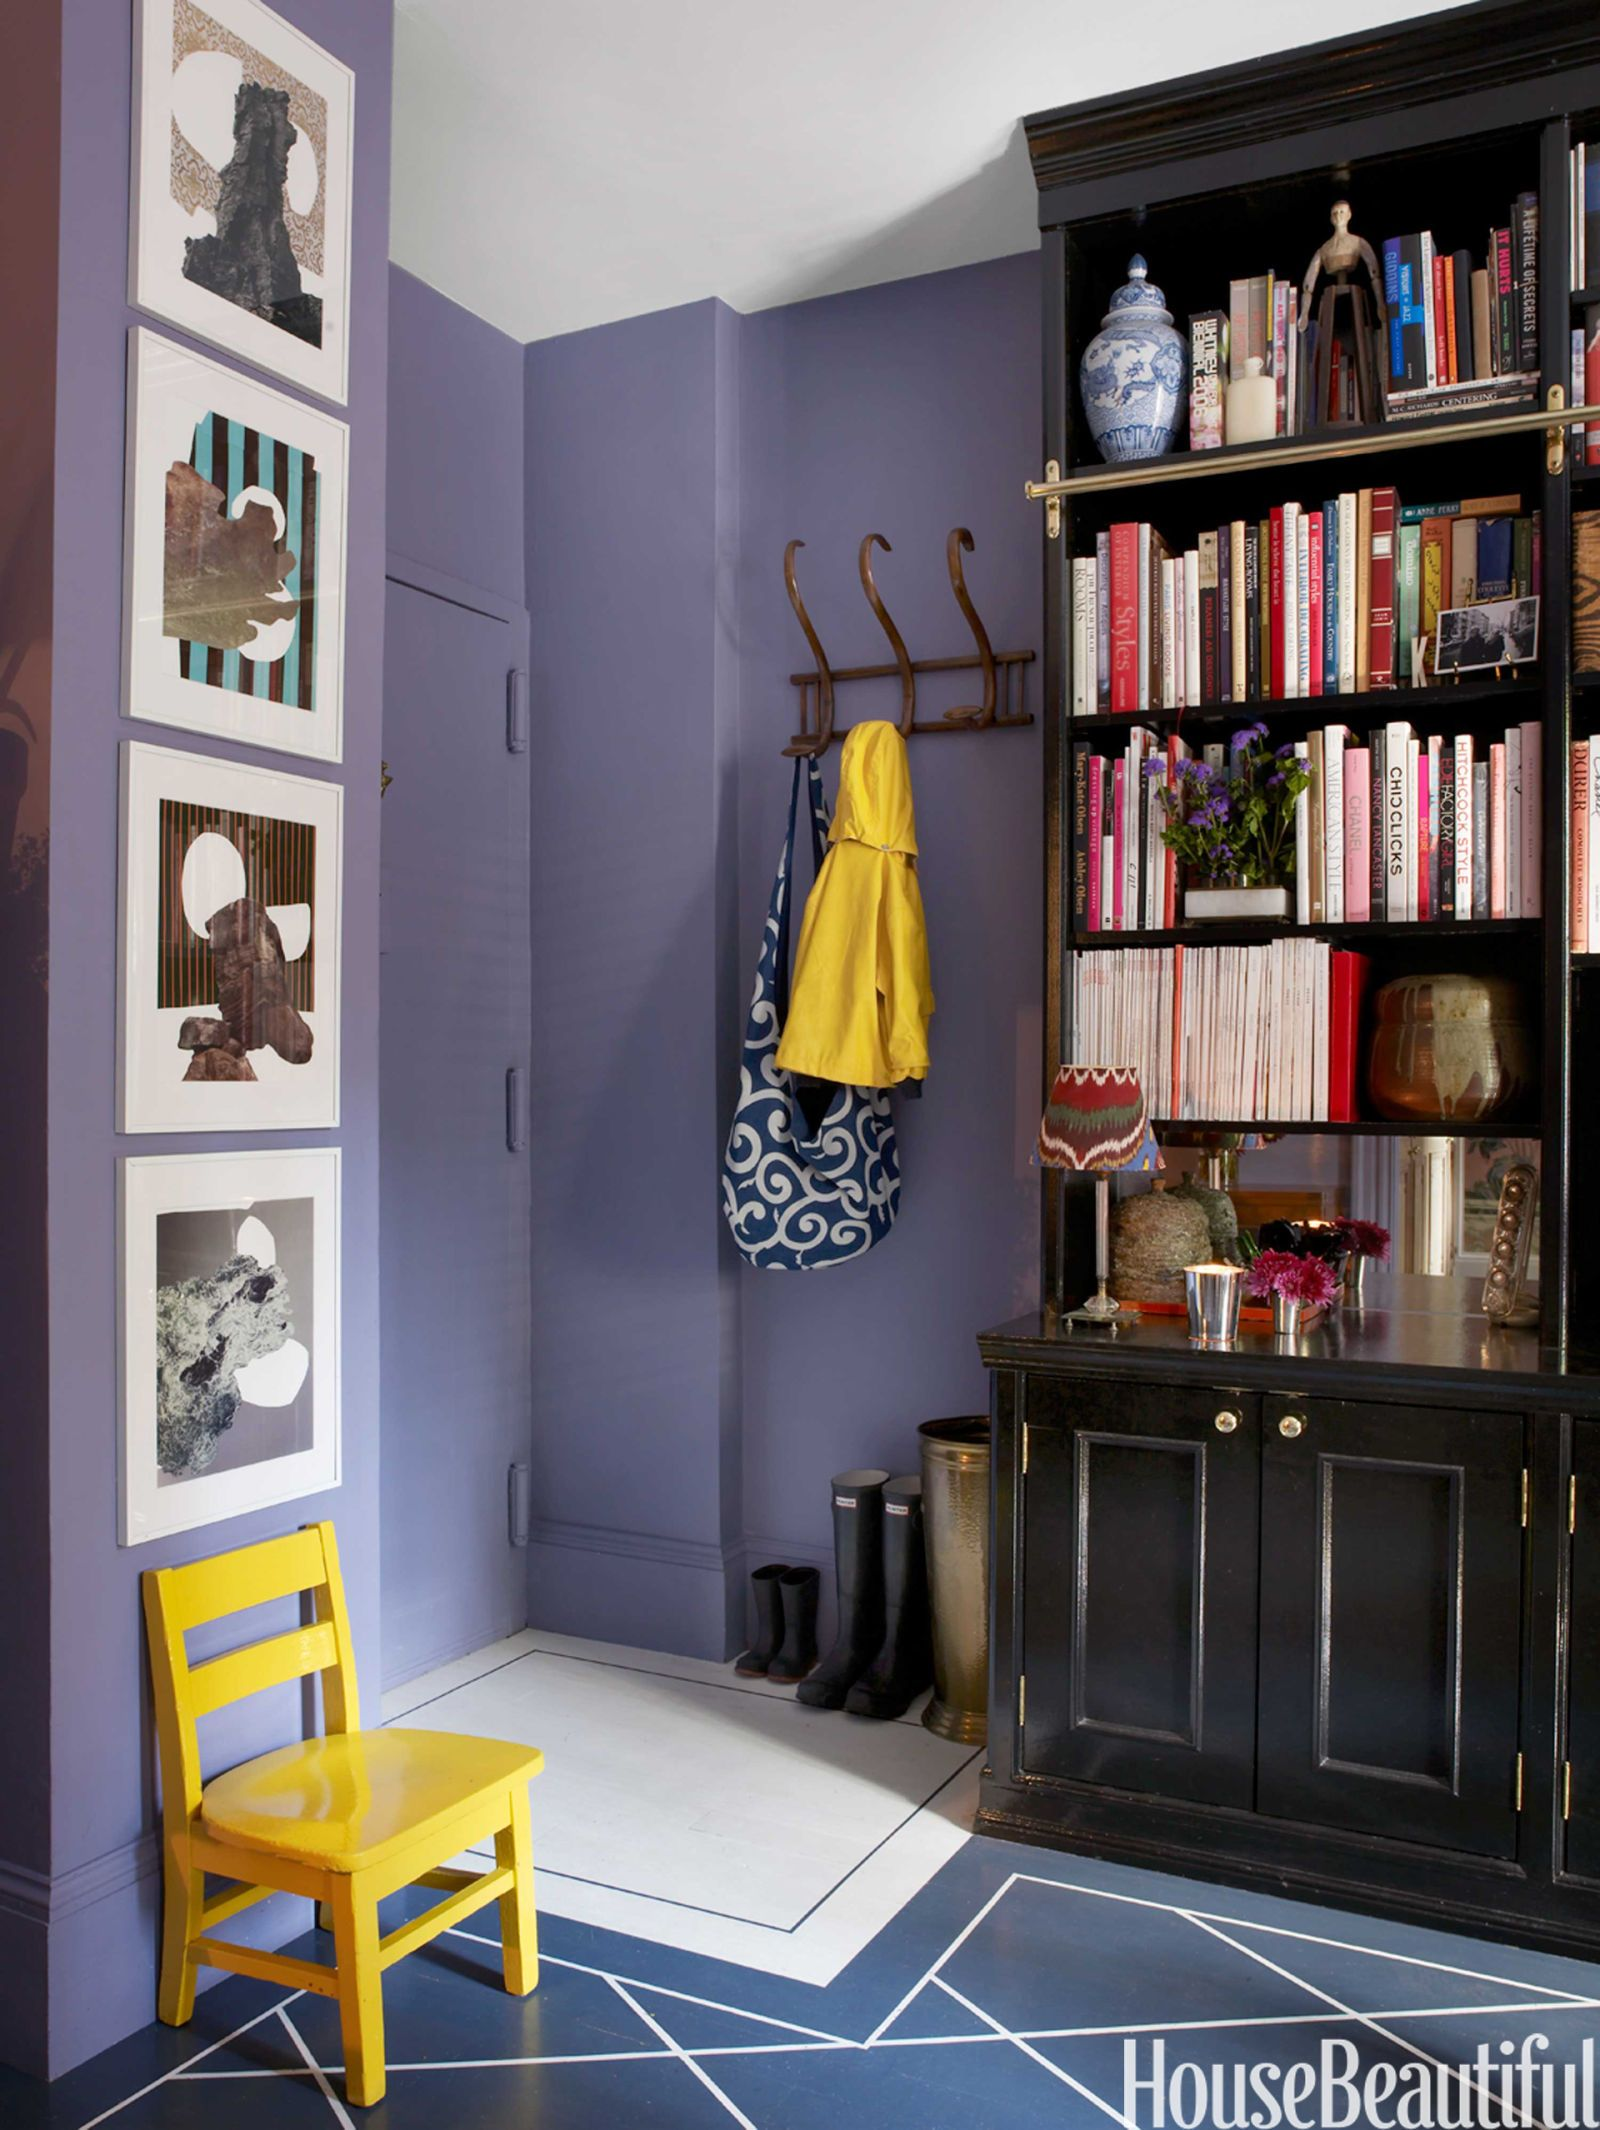 11 Small Space Design Ideas How To Make The Most Of A Small Space